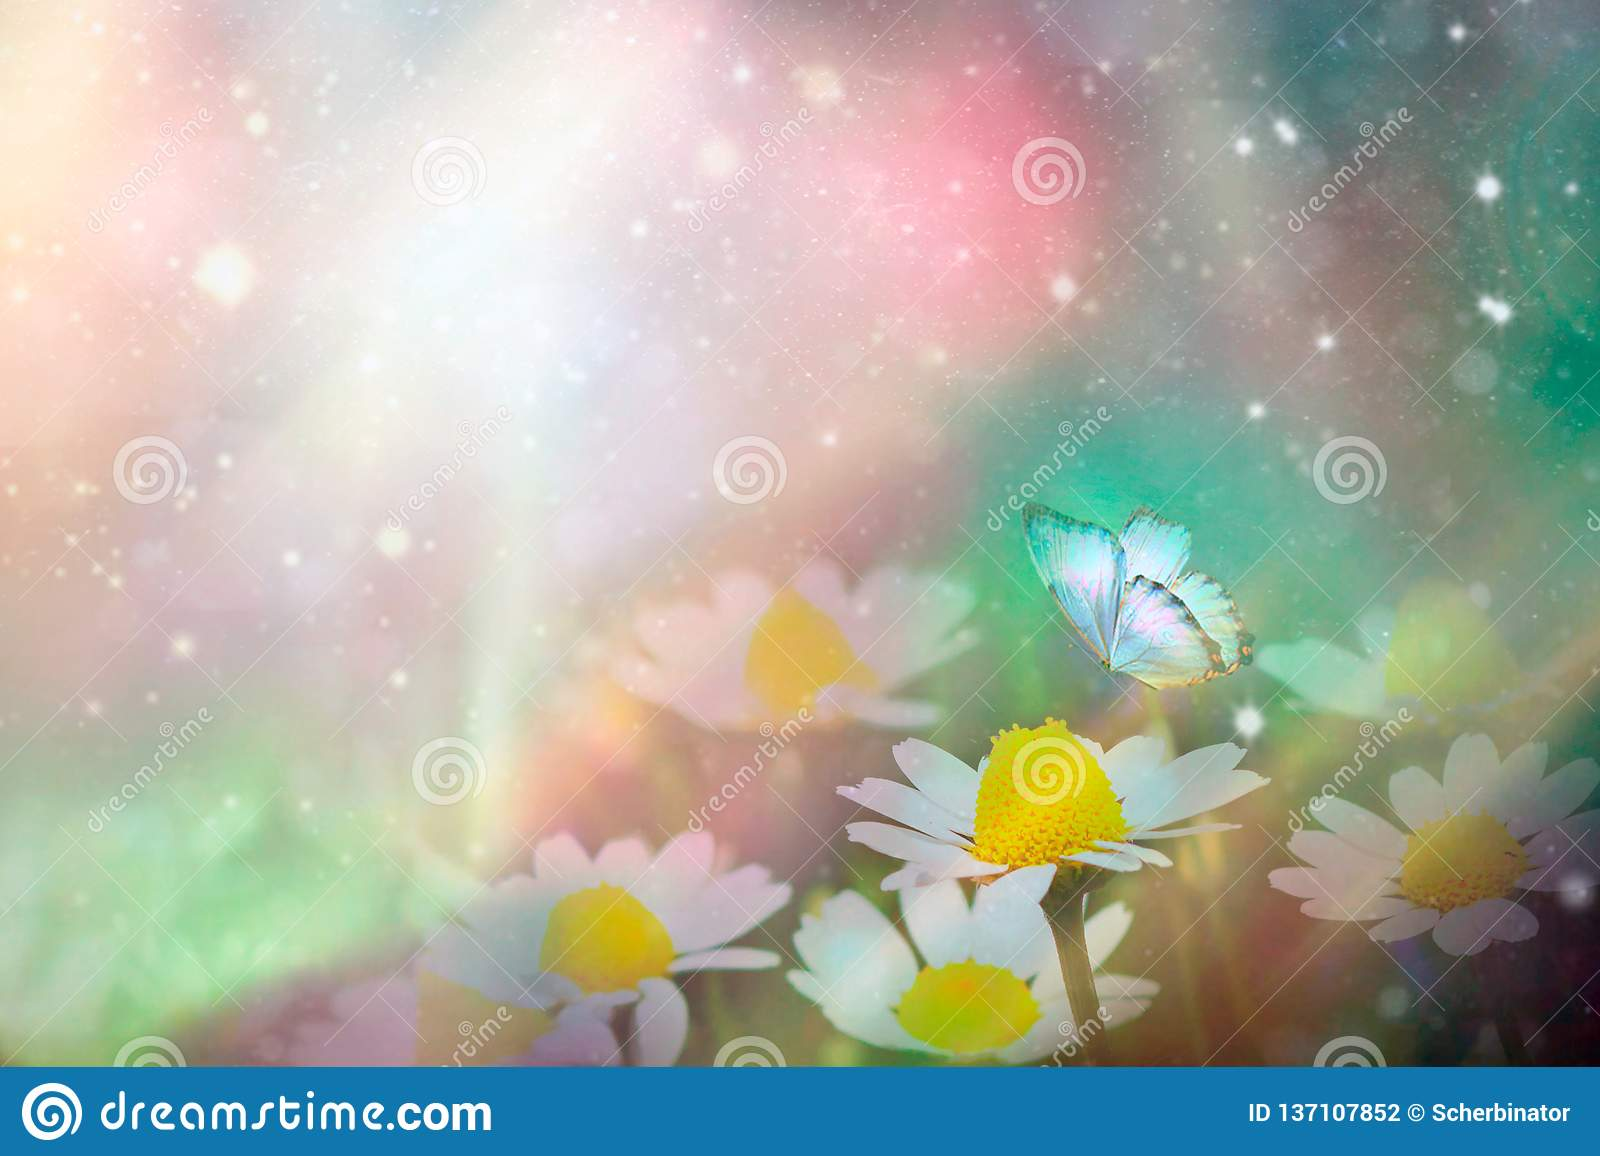 A gentle blue butterfly on a daisies flower in nature in soft pastel colors with a soft focus, macro. Dreamy, romantic, elegant,